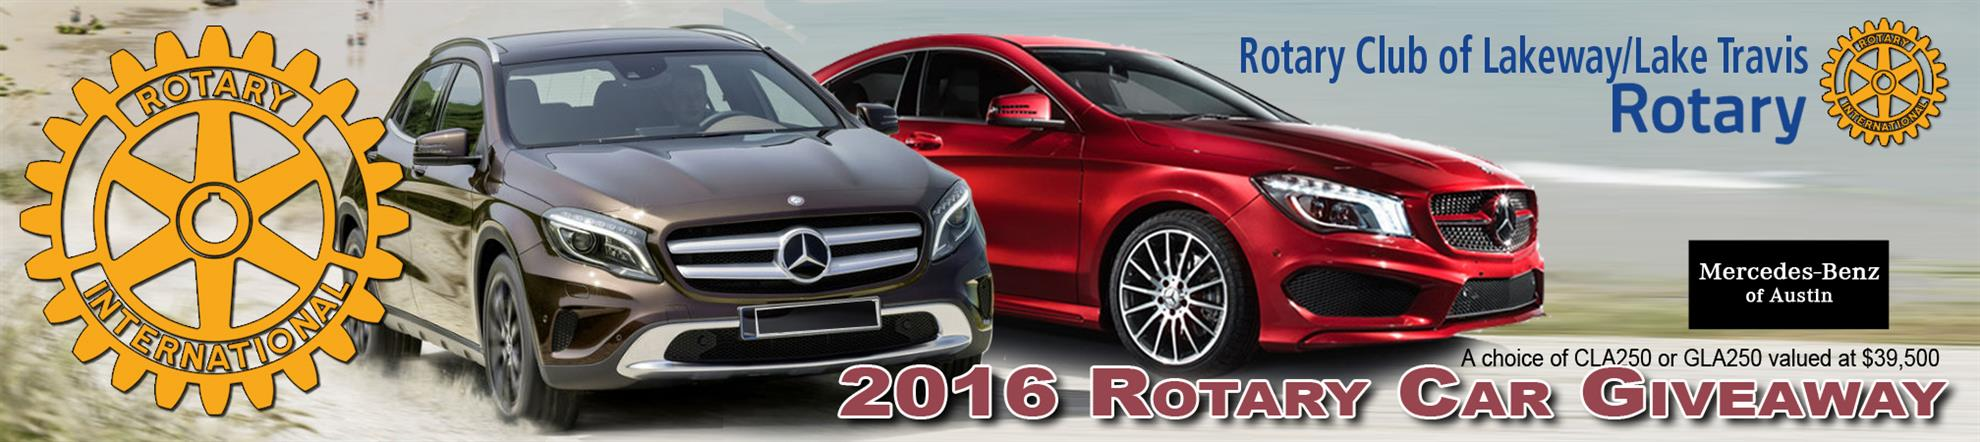 Home page rotary club of lakeway lake travis for Mercedes benz raffle 2017